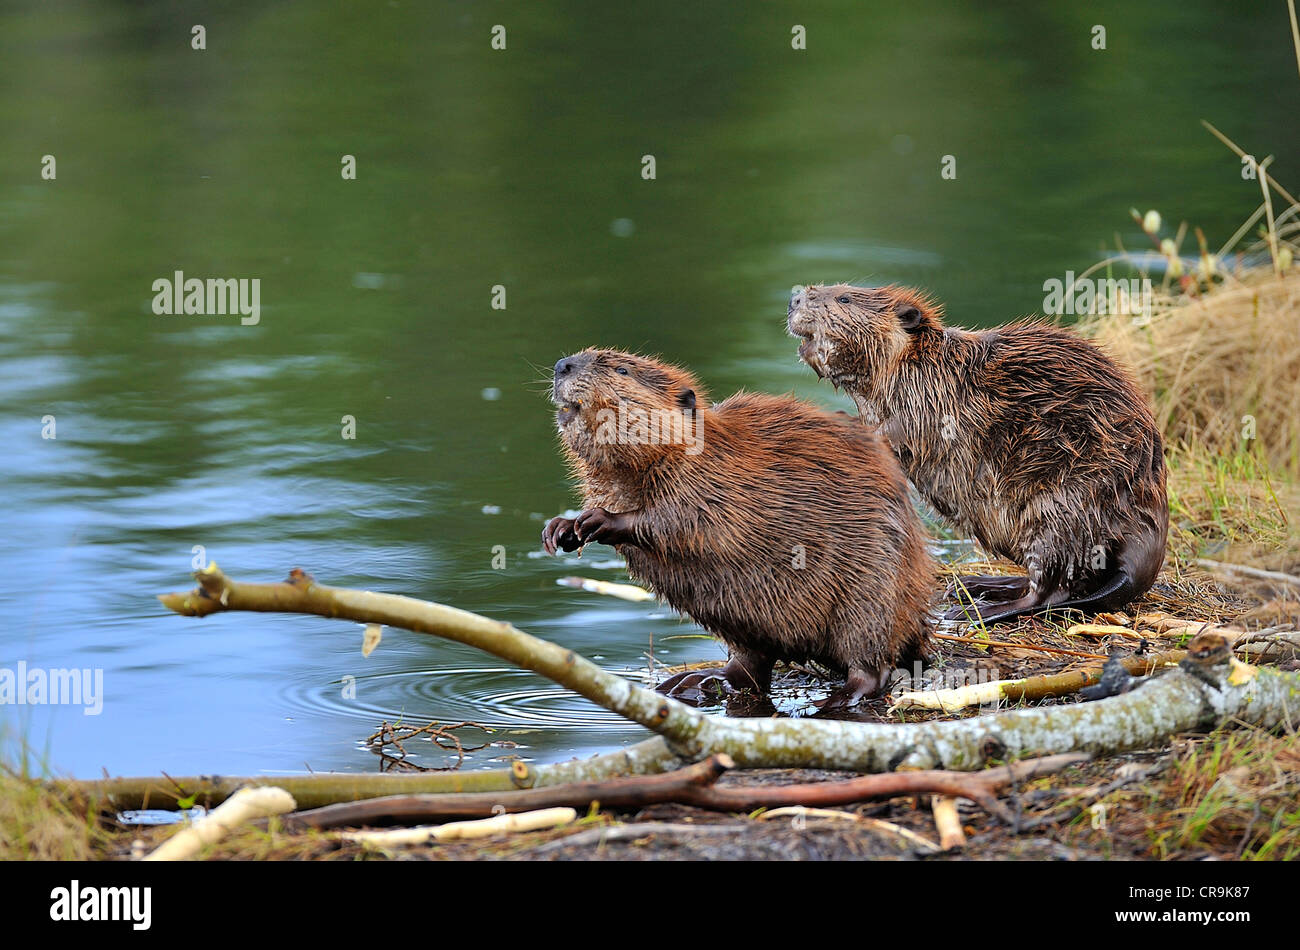 Two wild beavers on the edge of a lake standing on their rear feet to get a better view of the surroundings. - Stock Image